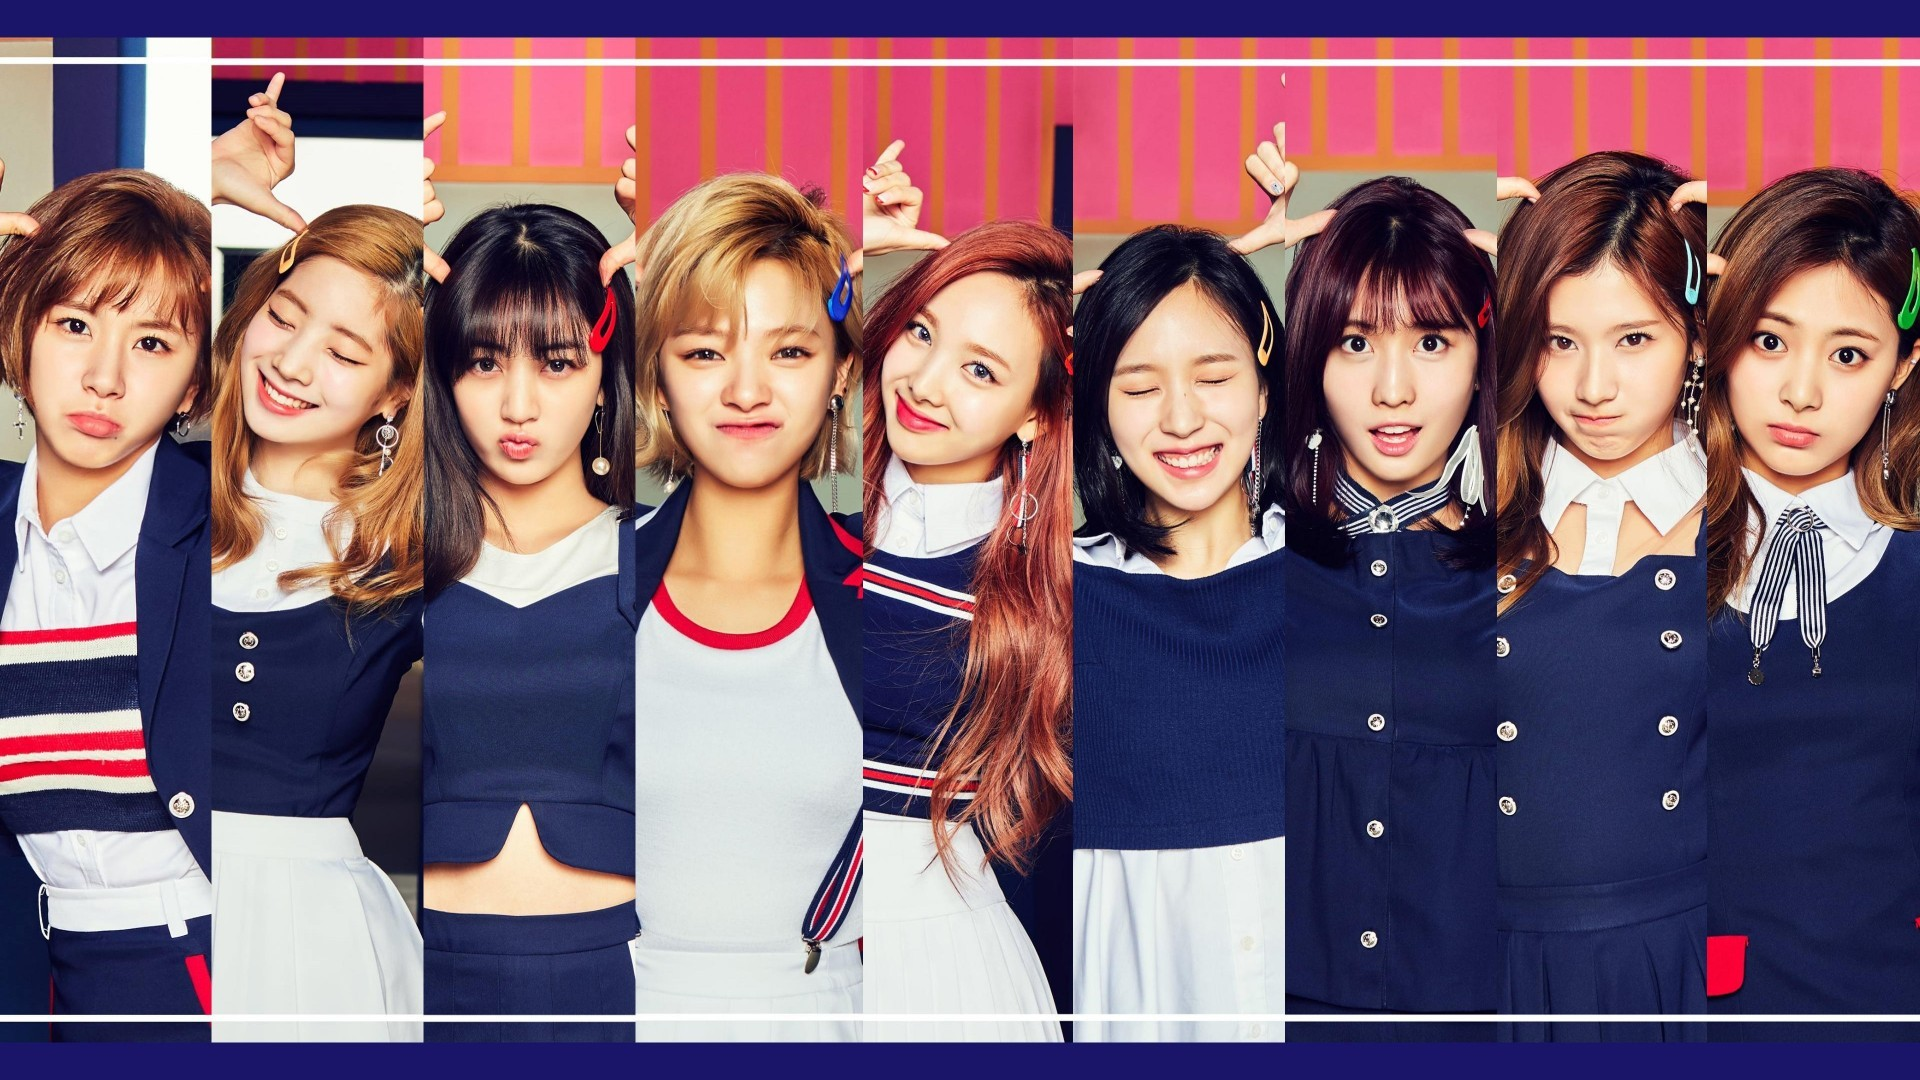 Twice South Korean Girls Kpop Likey Twice Wallpaper For Laptop 1920x1080 Wallpaper Teahub Io